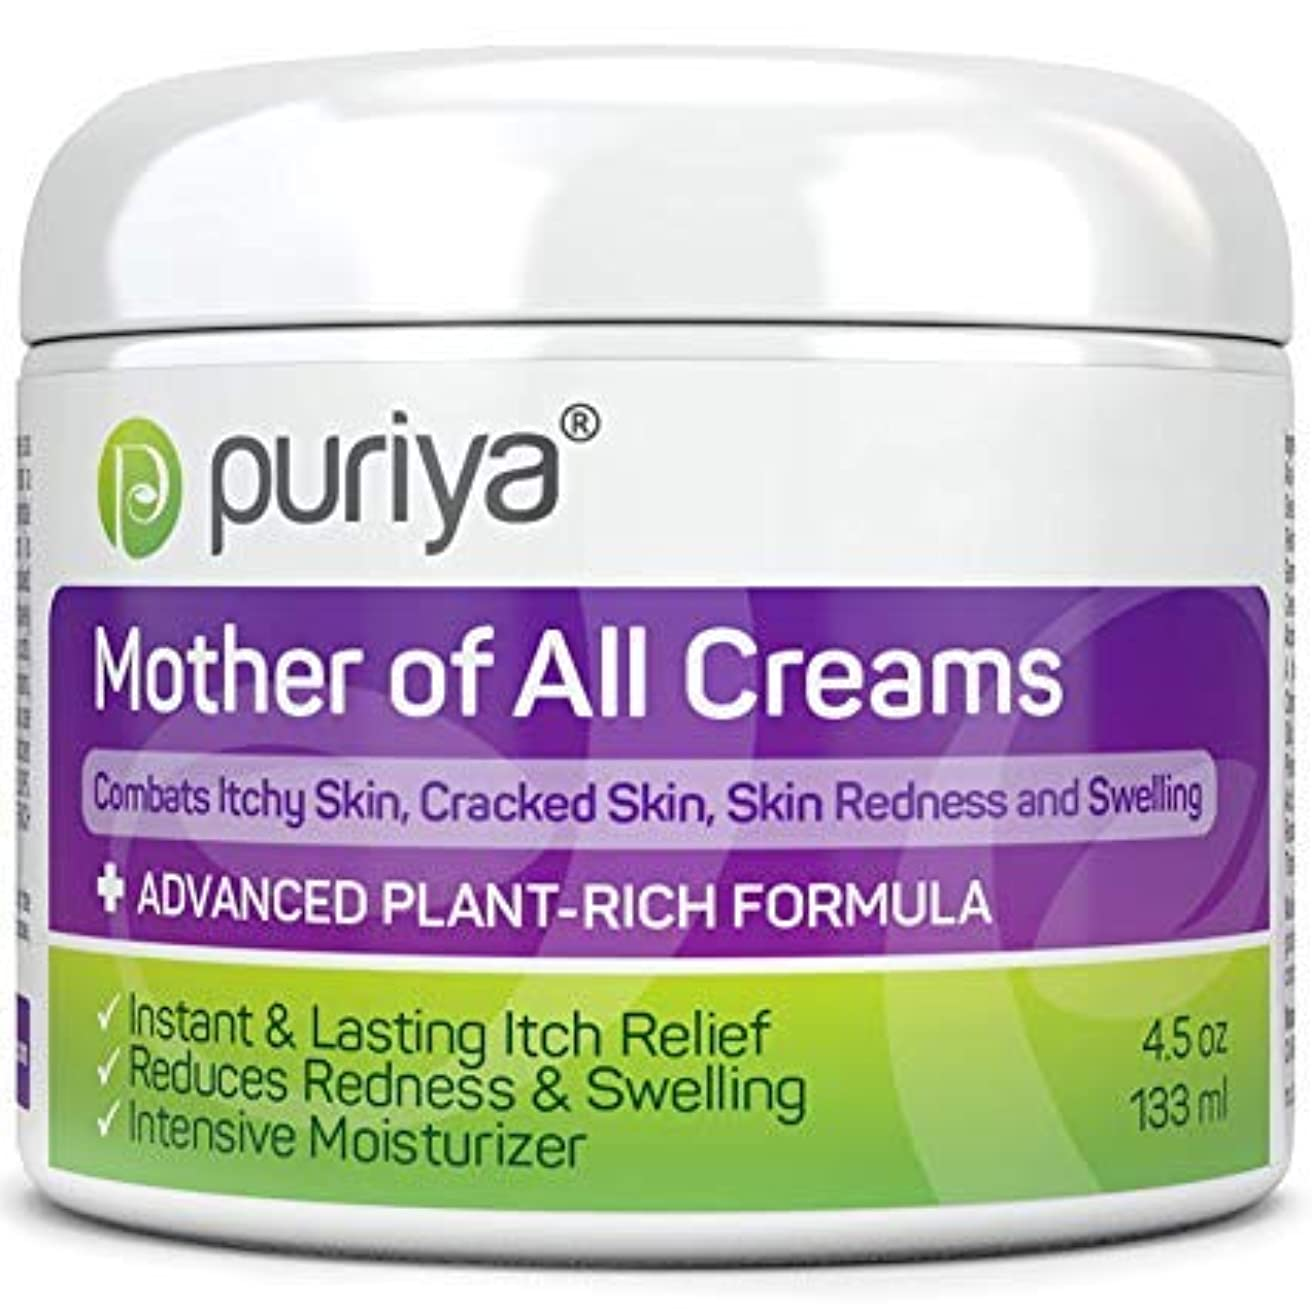 寸前軽蔑する一晩Puriya マザーオブオールクリーム Mother of All Creams Cream For Eczema, Psoriasis, Dermatitis and Rashes. Powerful Plant Rich...